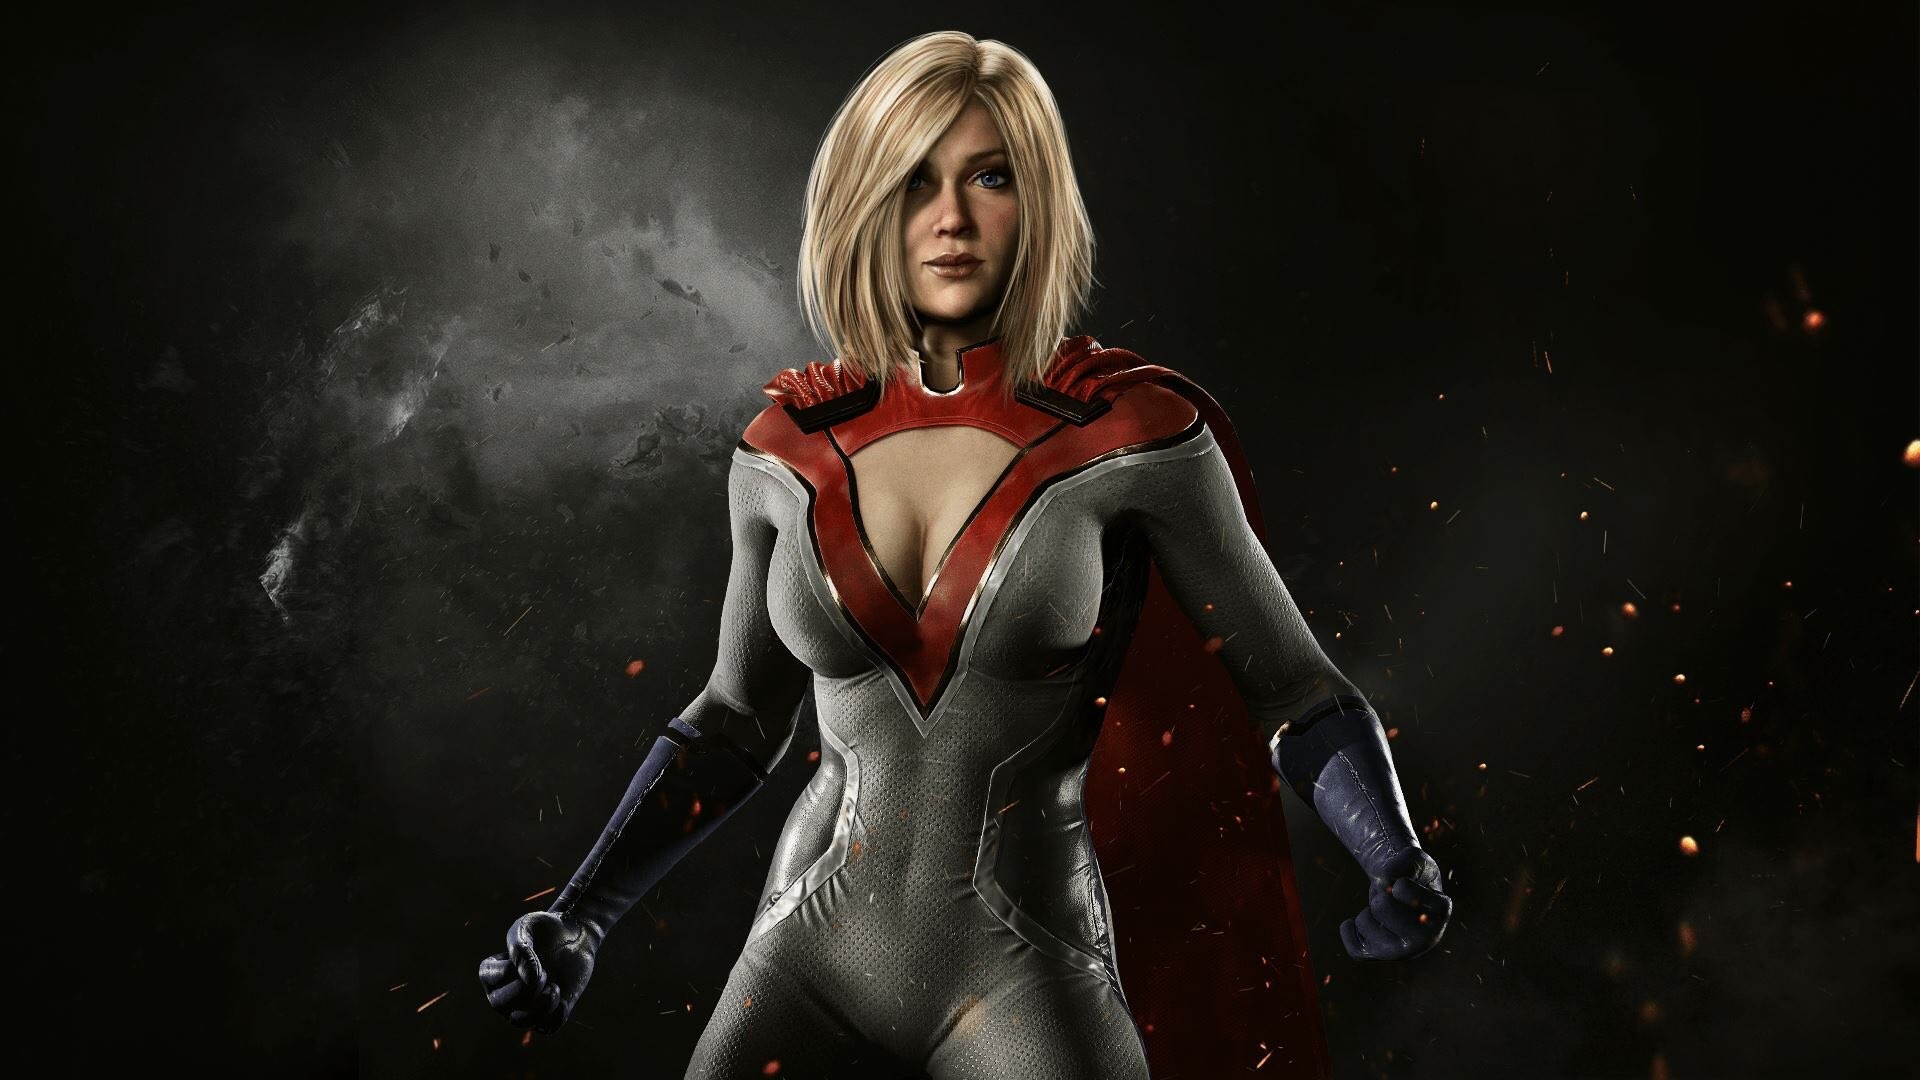 awesome Power Girl Injustice 2 Game 1920×1080